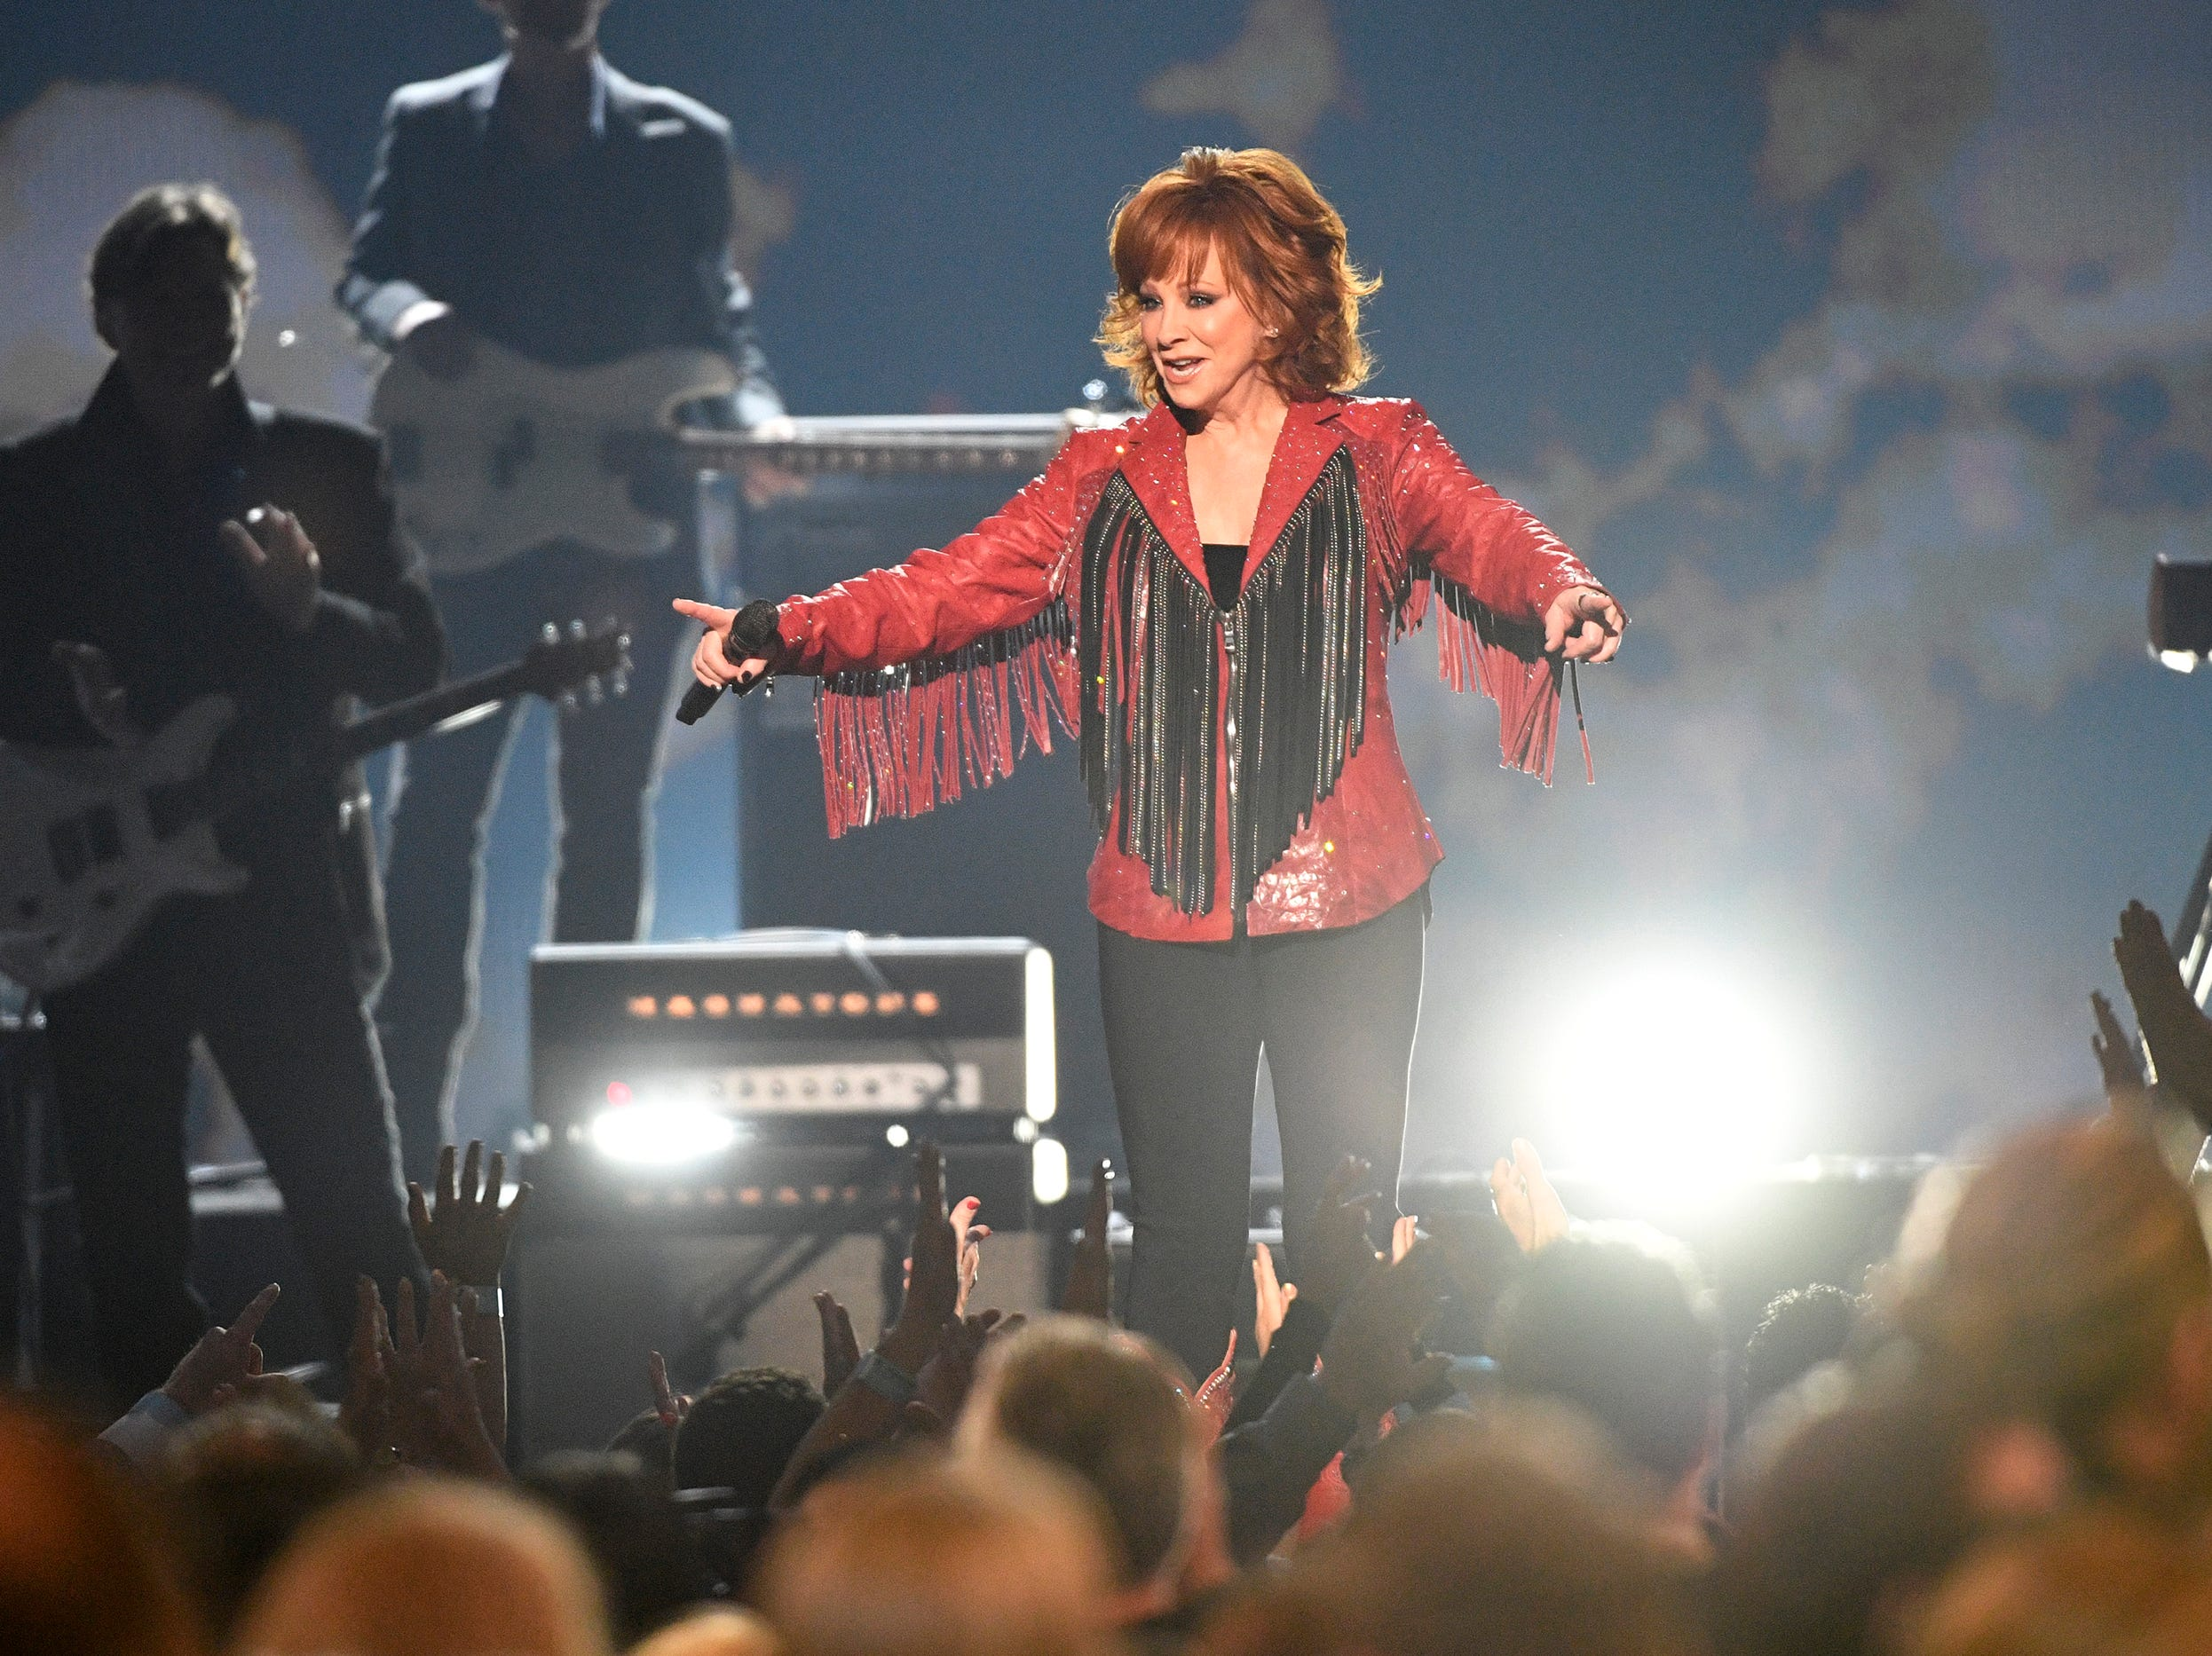 Reba McEntire performs during the 54TH Academy of Country Music Awards Sunday, April 7, 2019, in Las Vegas, Nev.